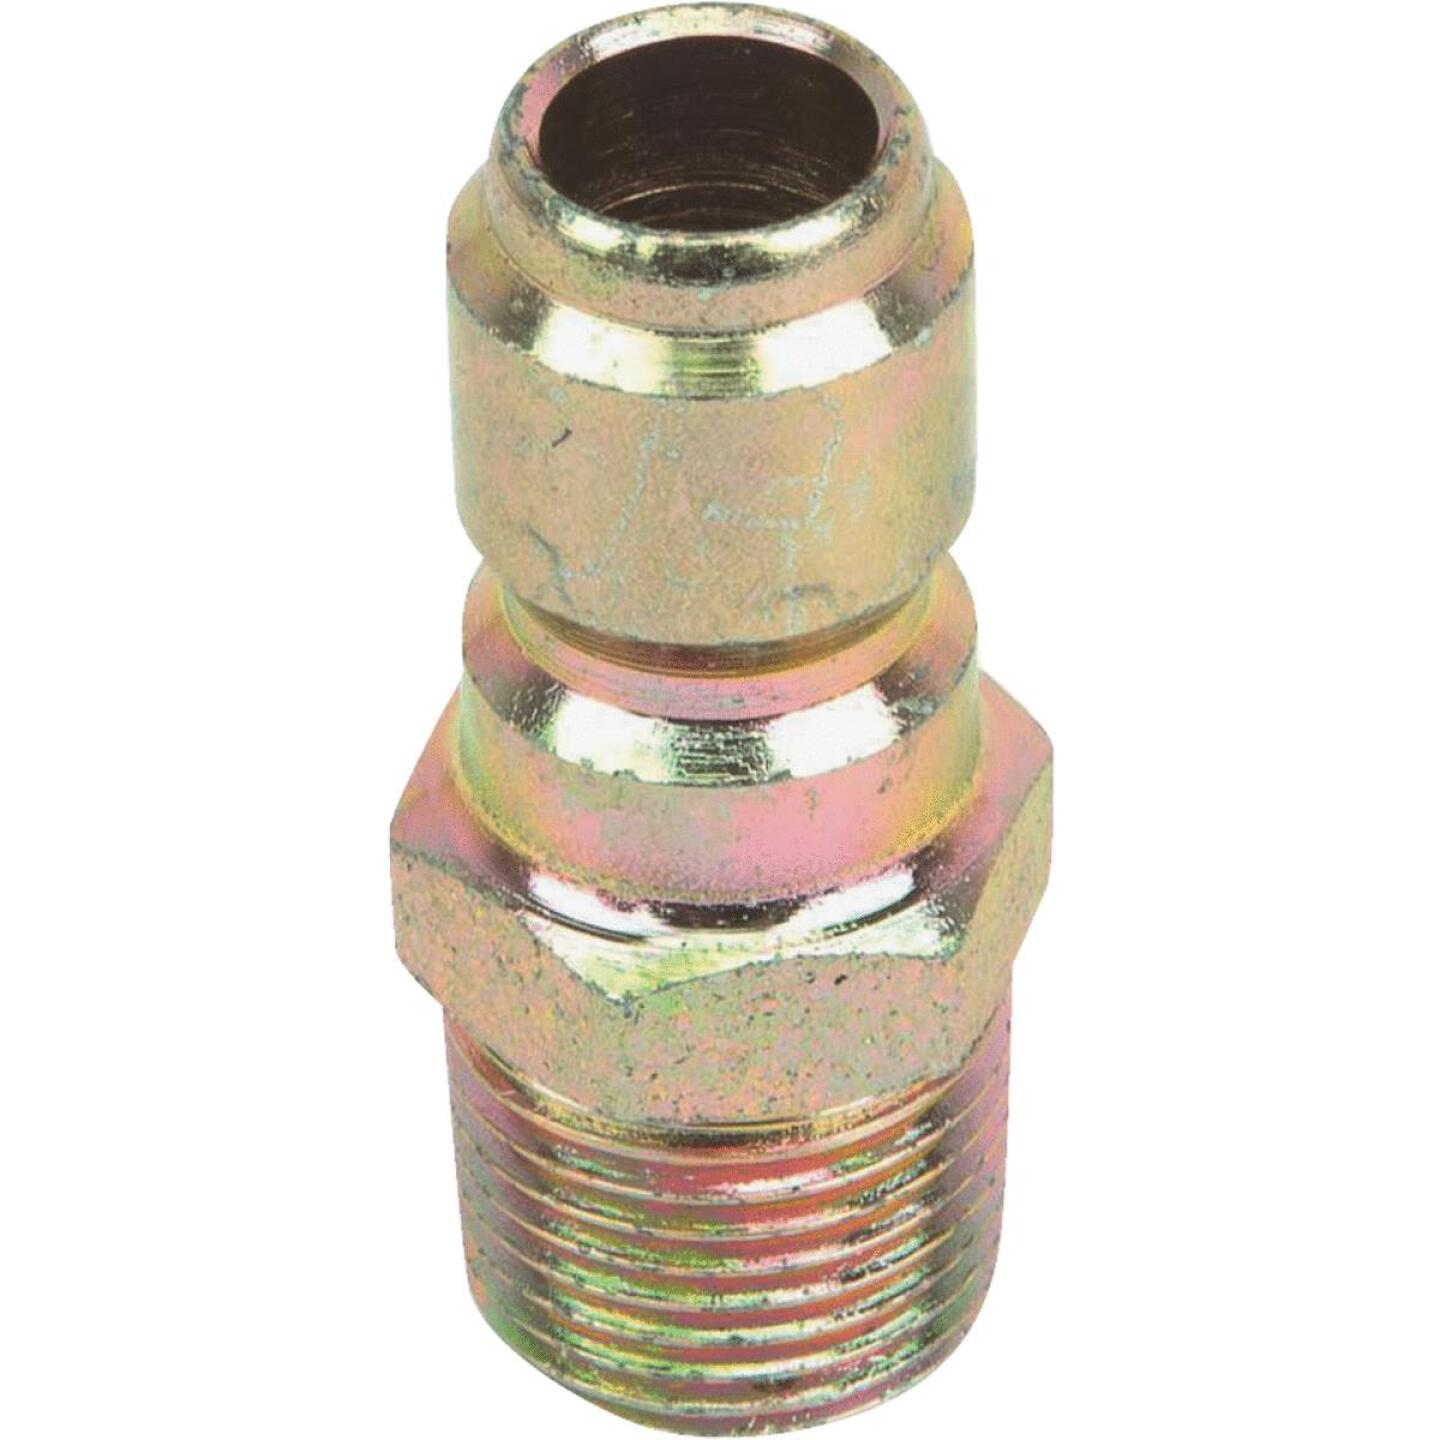 Forney 3/8 In. Male Quick Connect Pressure Washer Plug Image 3